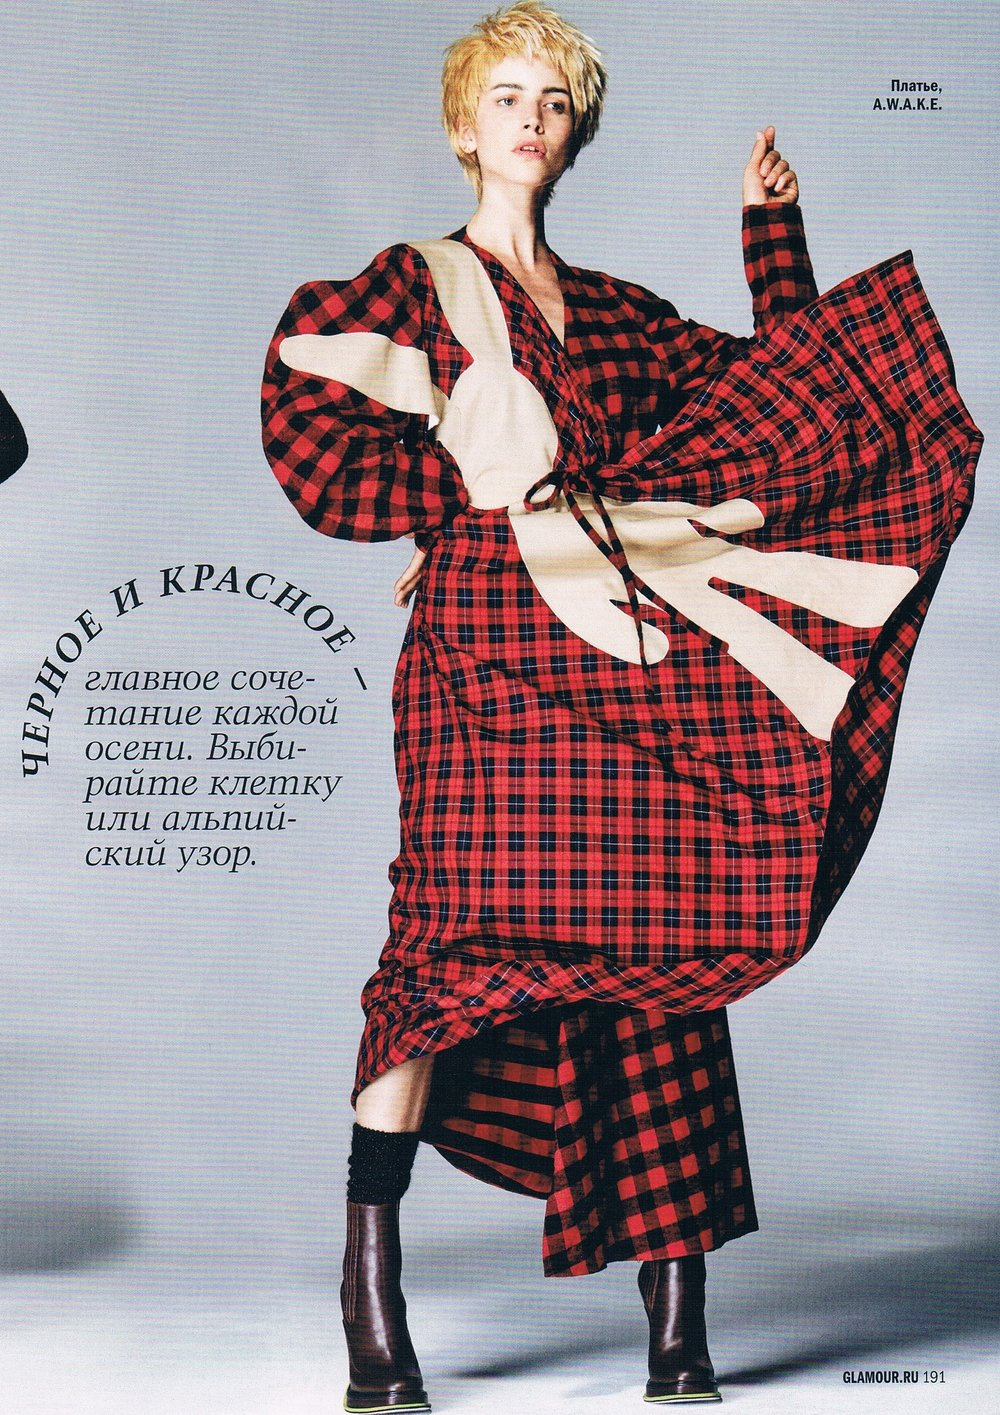 GLAMOUR RUSSIA Sept16 page191.jpg